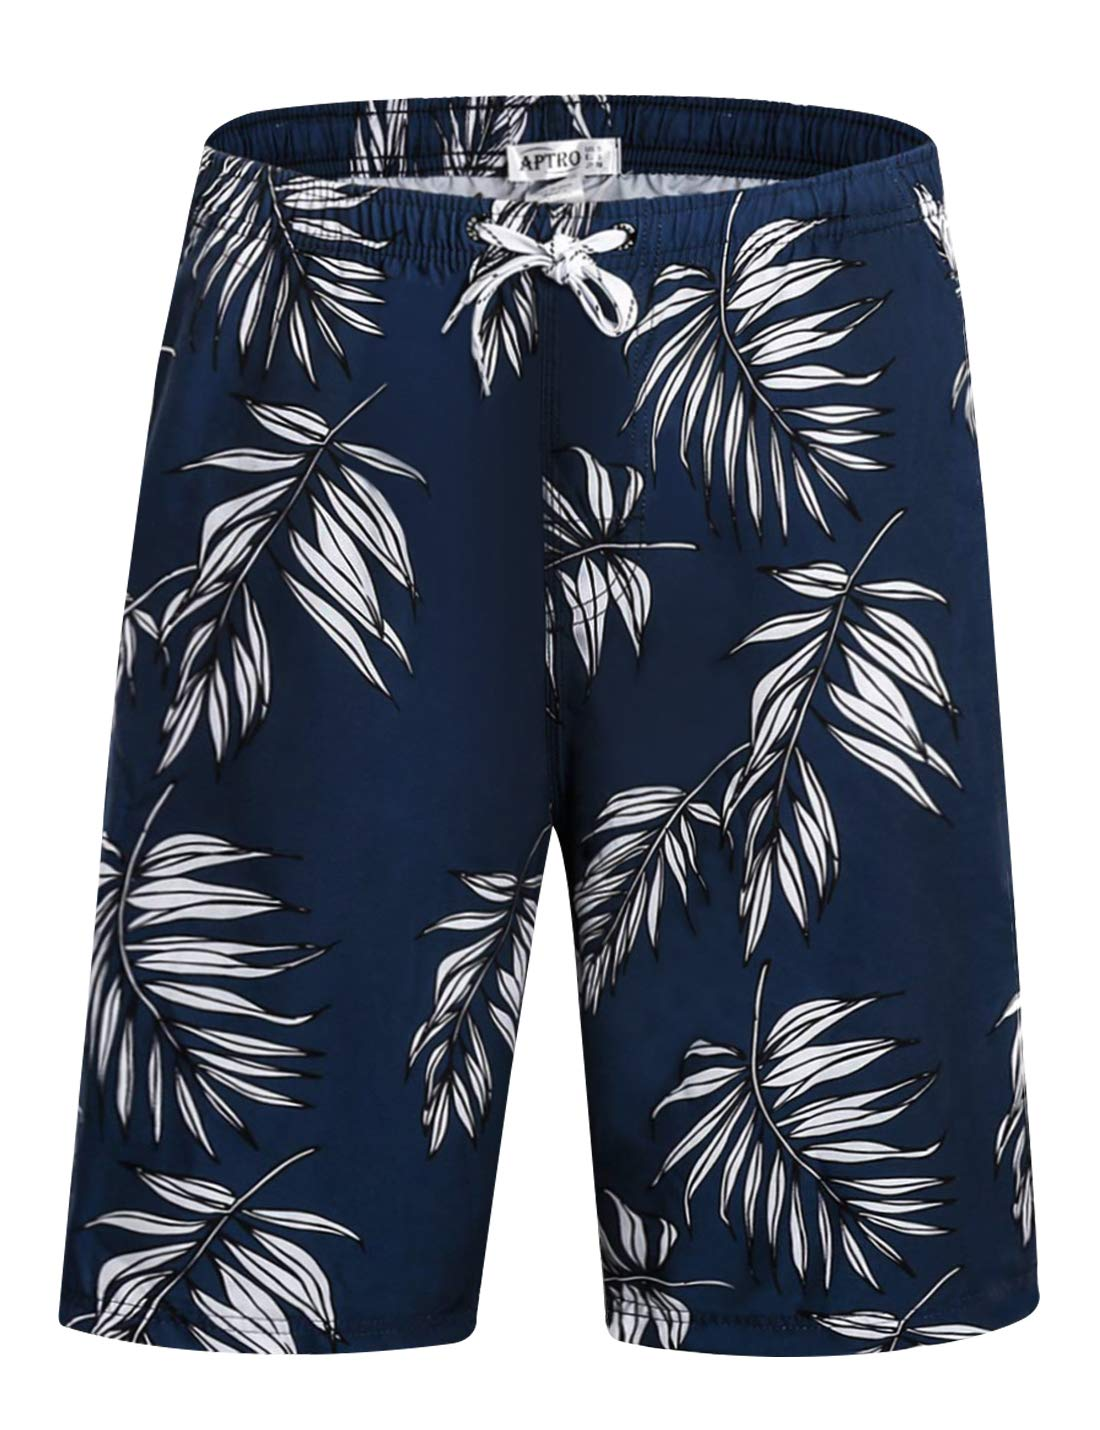 Men's Quick Dry Swim Trunks with Pockets Long Elastic Waistband Beach Holiday Bathing Suits with Mesh Liner (M, no mesh Lining-Leaves) by APTRO